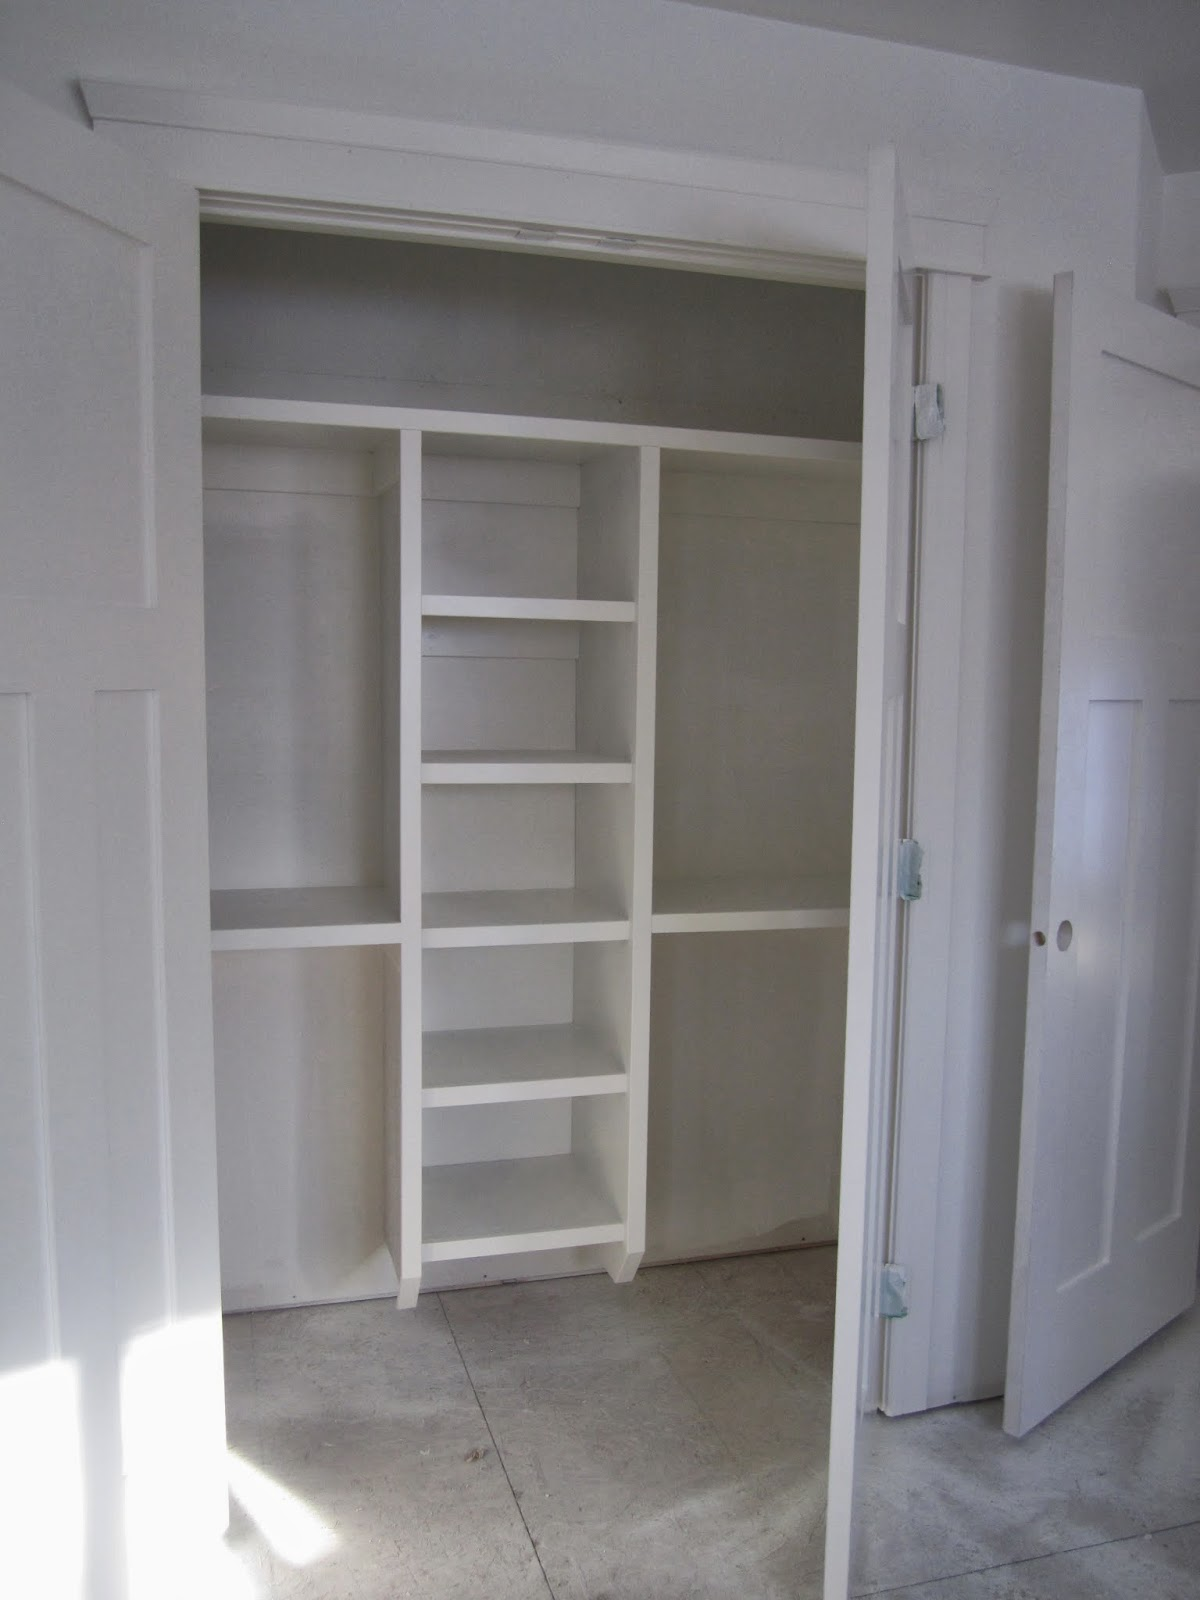 Building an infill in Westmount Shelves Trim and Paint